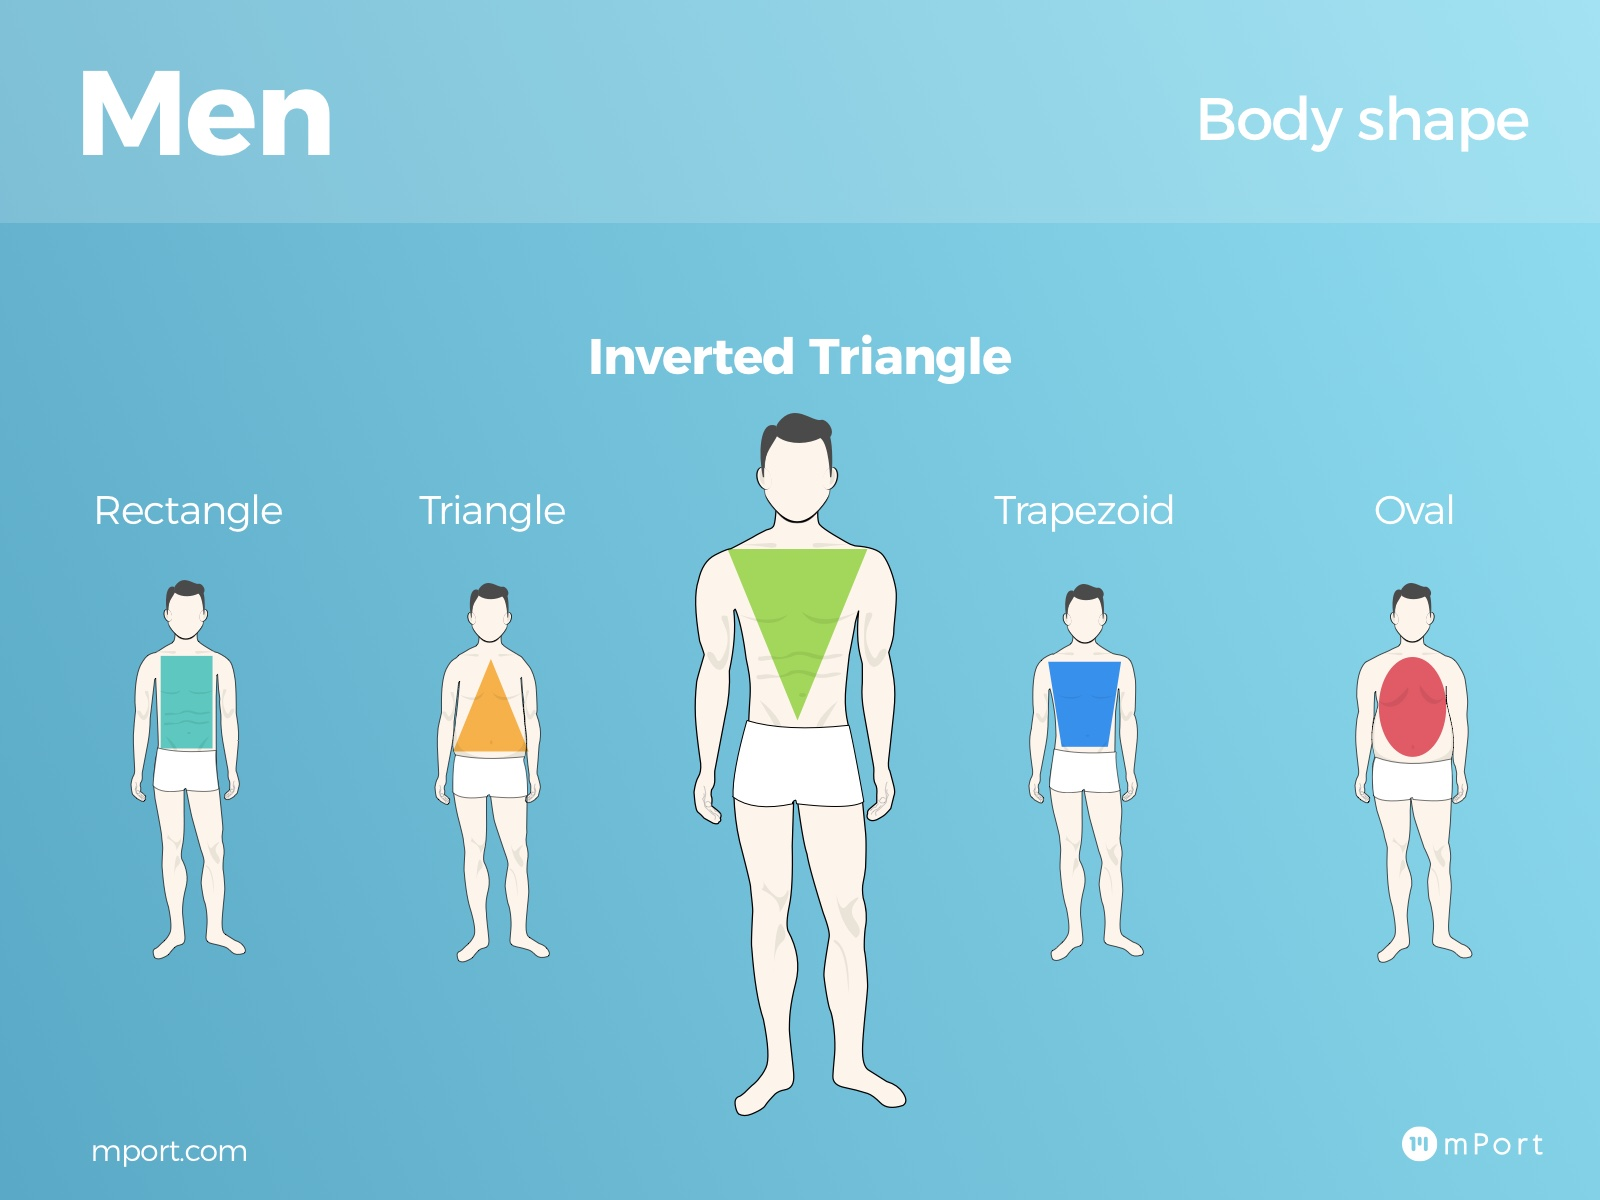 Male Inverted Triangle Body Shape